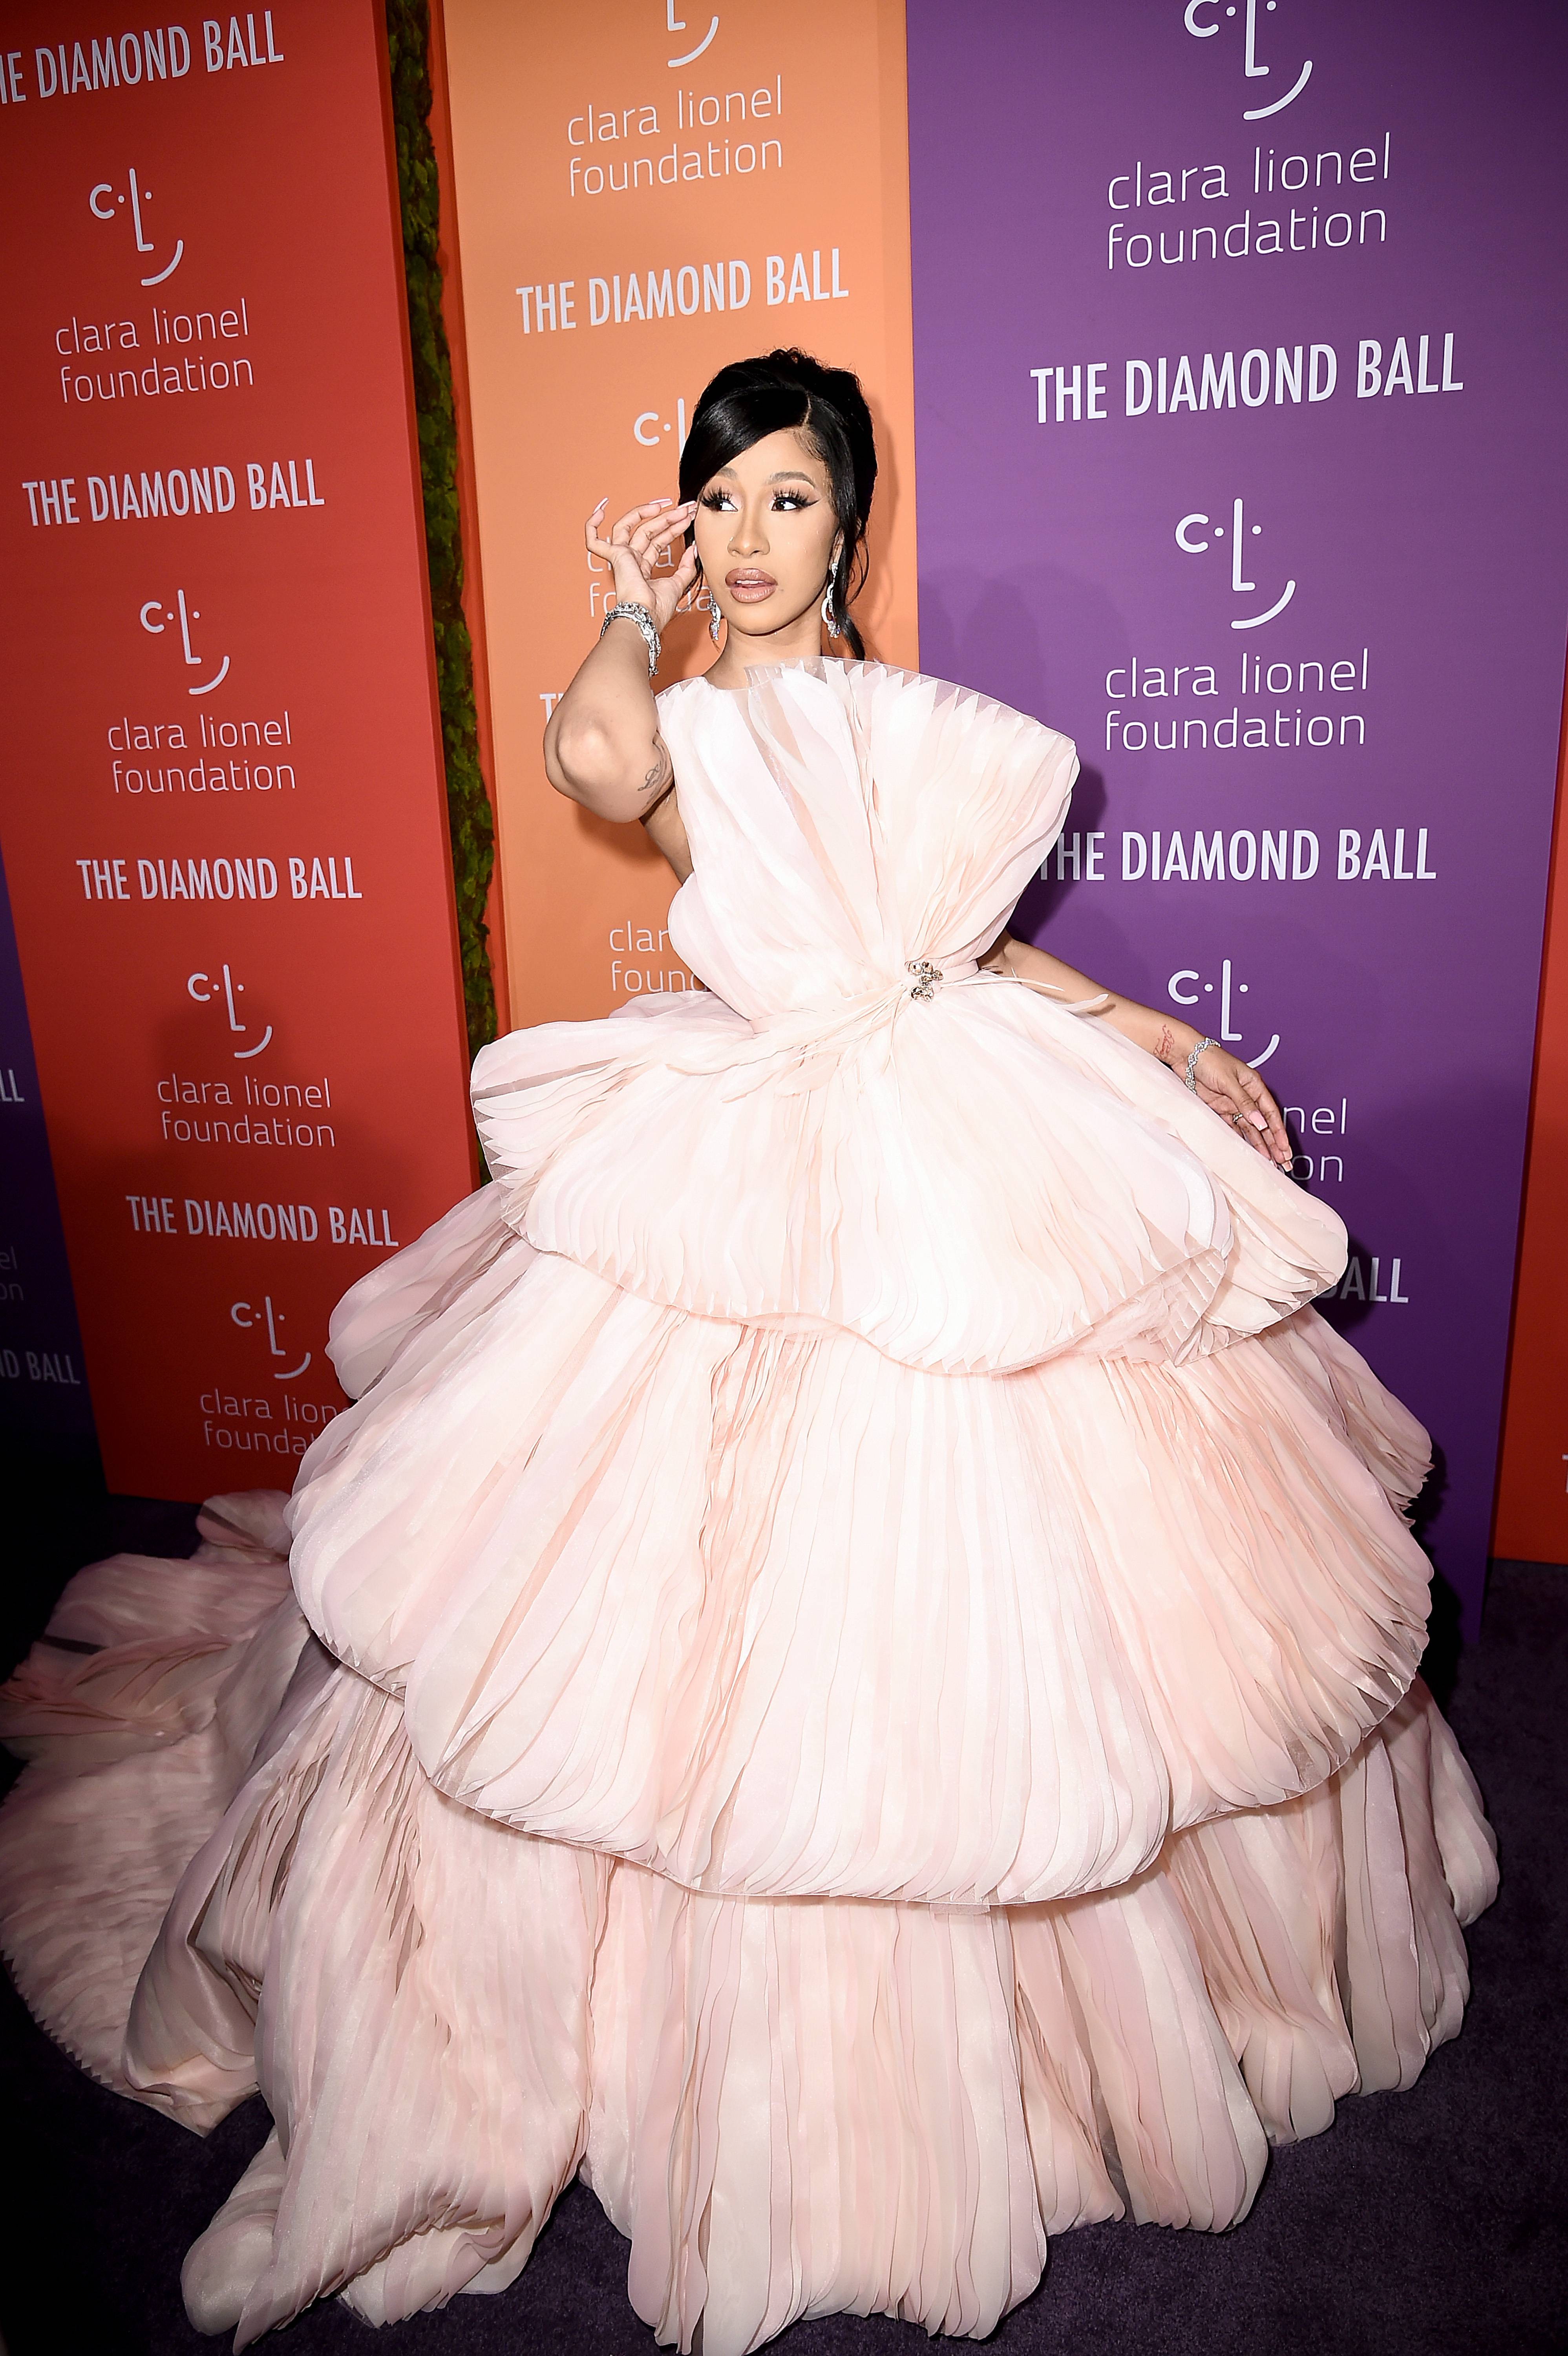 Pretty In Pink! - Styled by Kollin Carter, Cardi B's Diamond Ball outfit was quite fitting! Shegraced carpetlooking like a poppin' princess wearing an enormous, light pink dress by Georges Hobeika, and of course diamonds by Lorriane Schwartz. (Photo: Steven Ferdman/Getty Images)